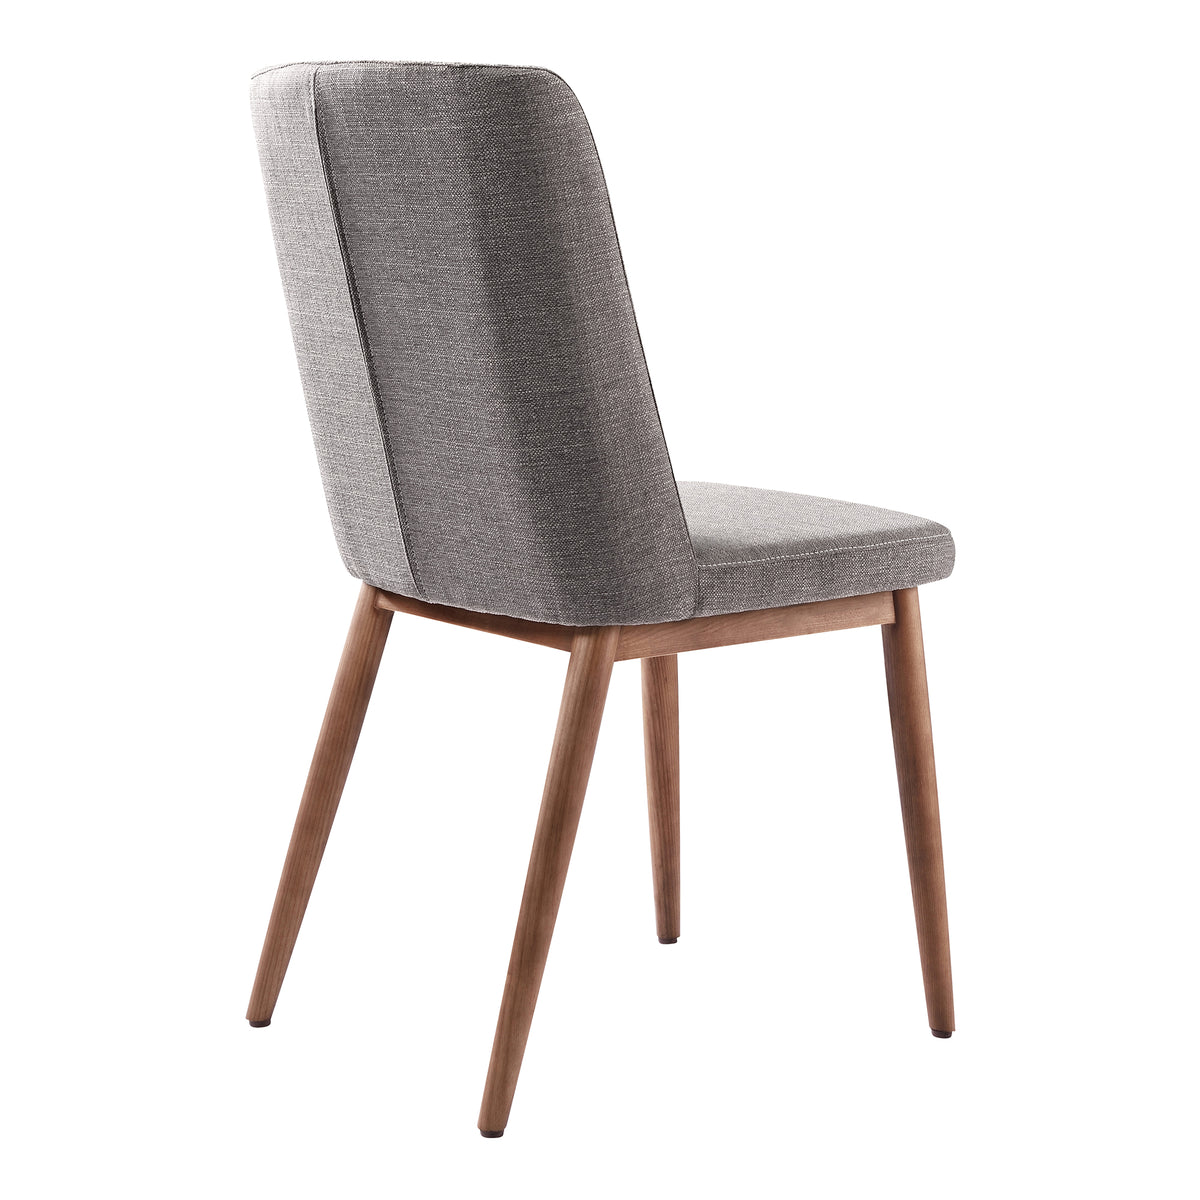 Simplis Dining Chair - Set of 2